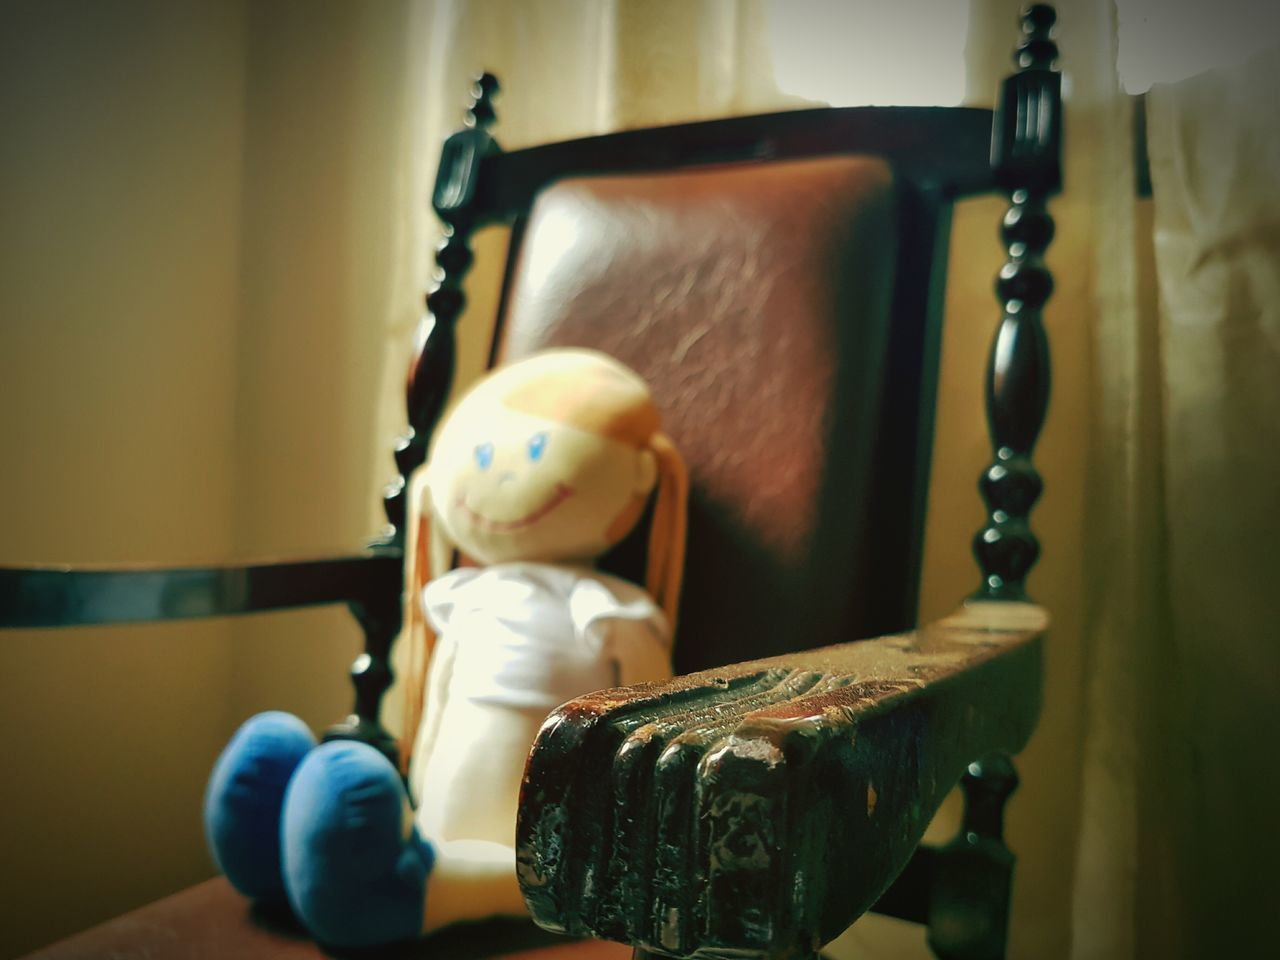 Indoors  Necklace Antique Wood - Material Old-fashioned No People Figurine  Close-up Doll Chair Armchair Shadows & Lights Retro Styled Antique Classic Style Premium Collection Getty Images EyeEmNewHere TCPM Vintage Old-fashioned Toys Break The Mold Children Kids